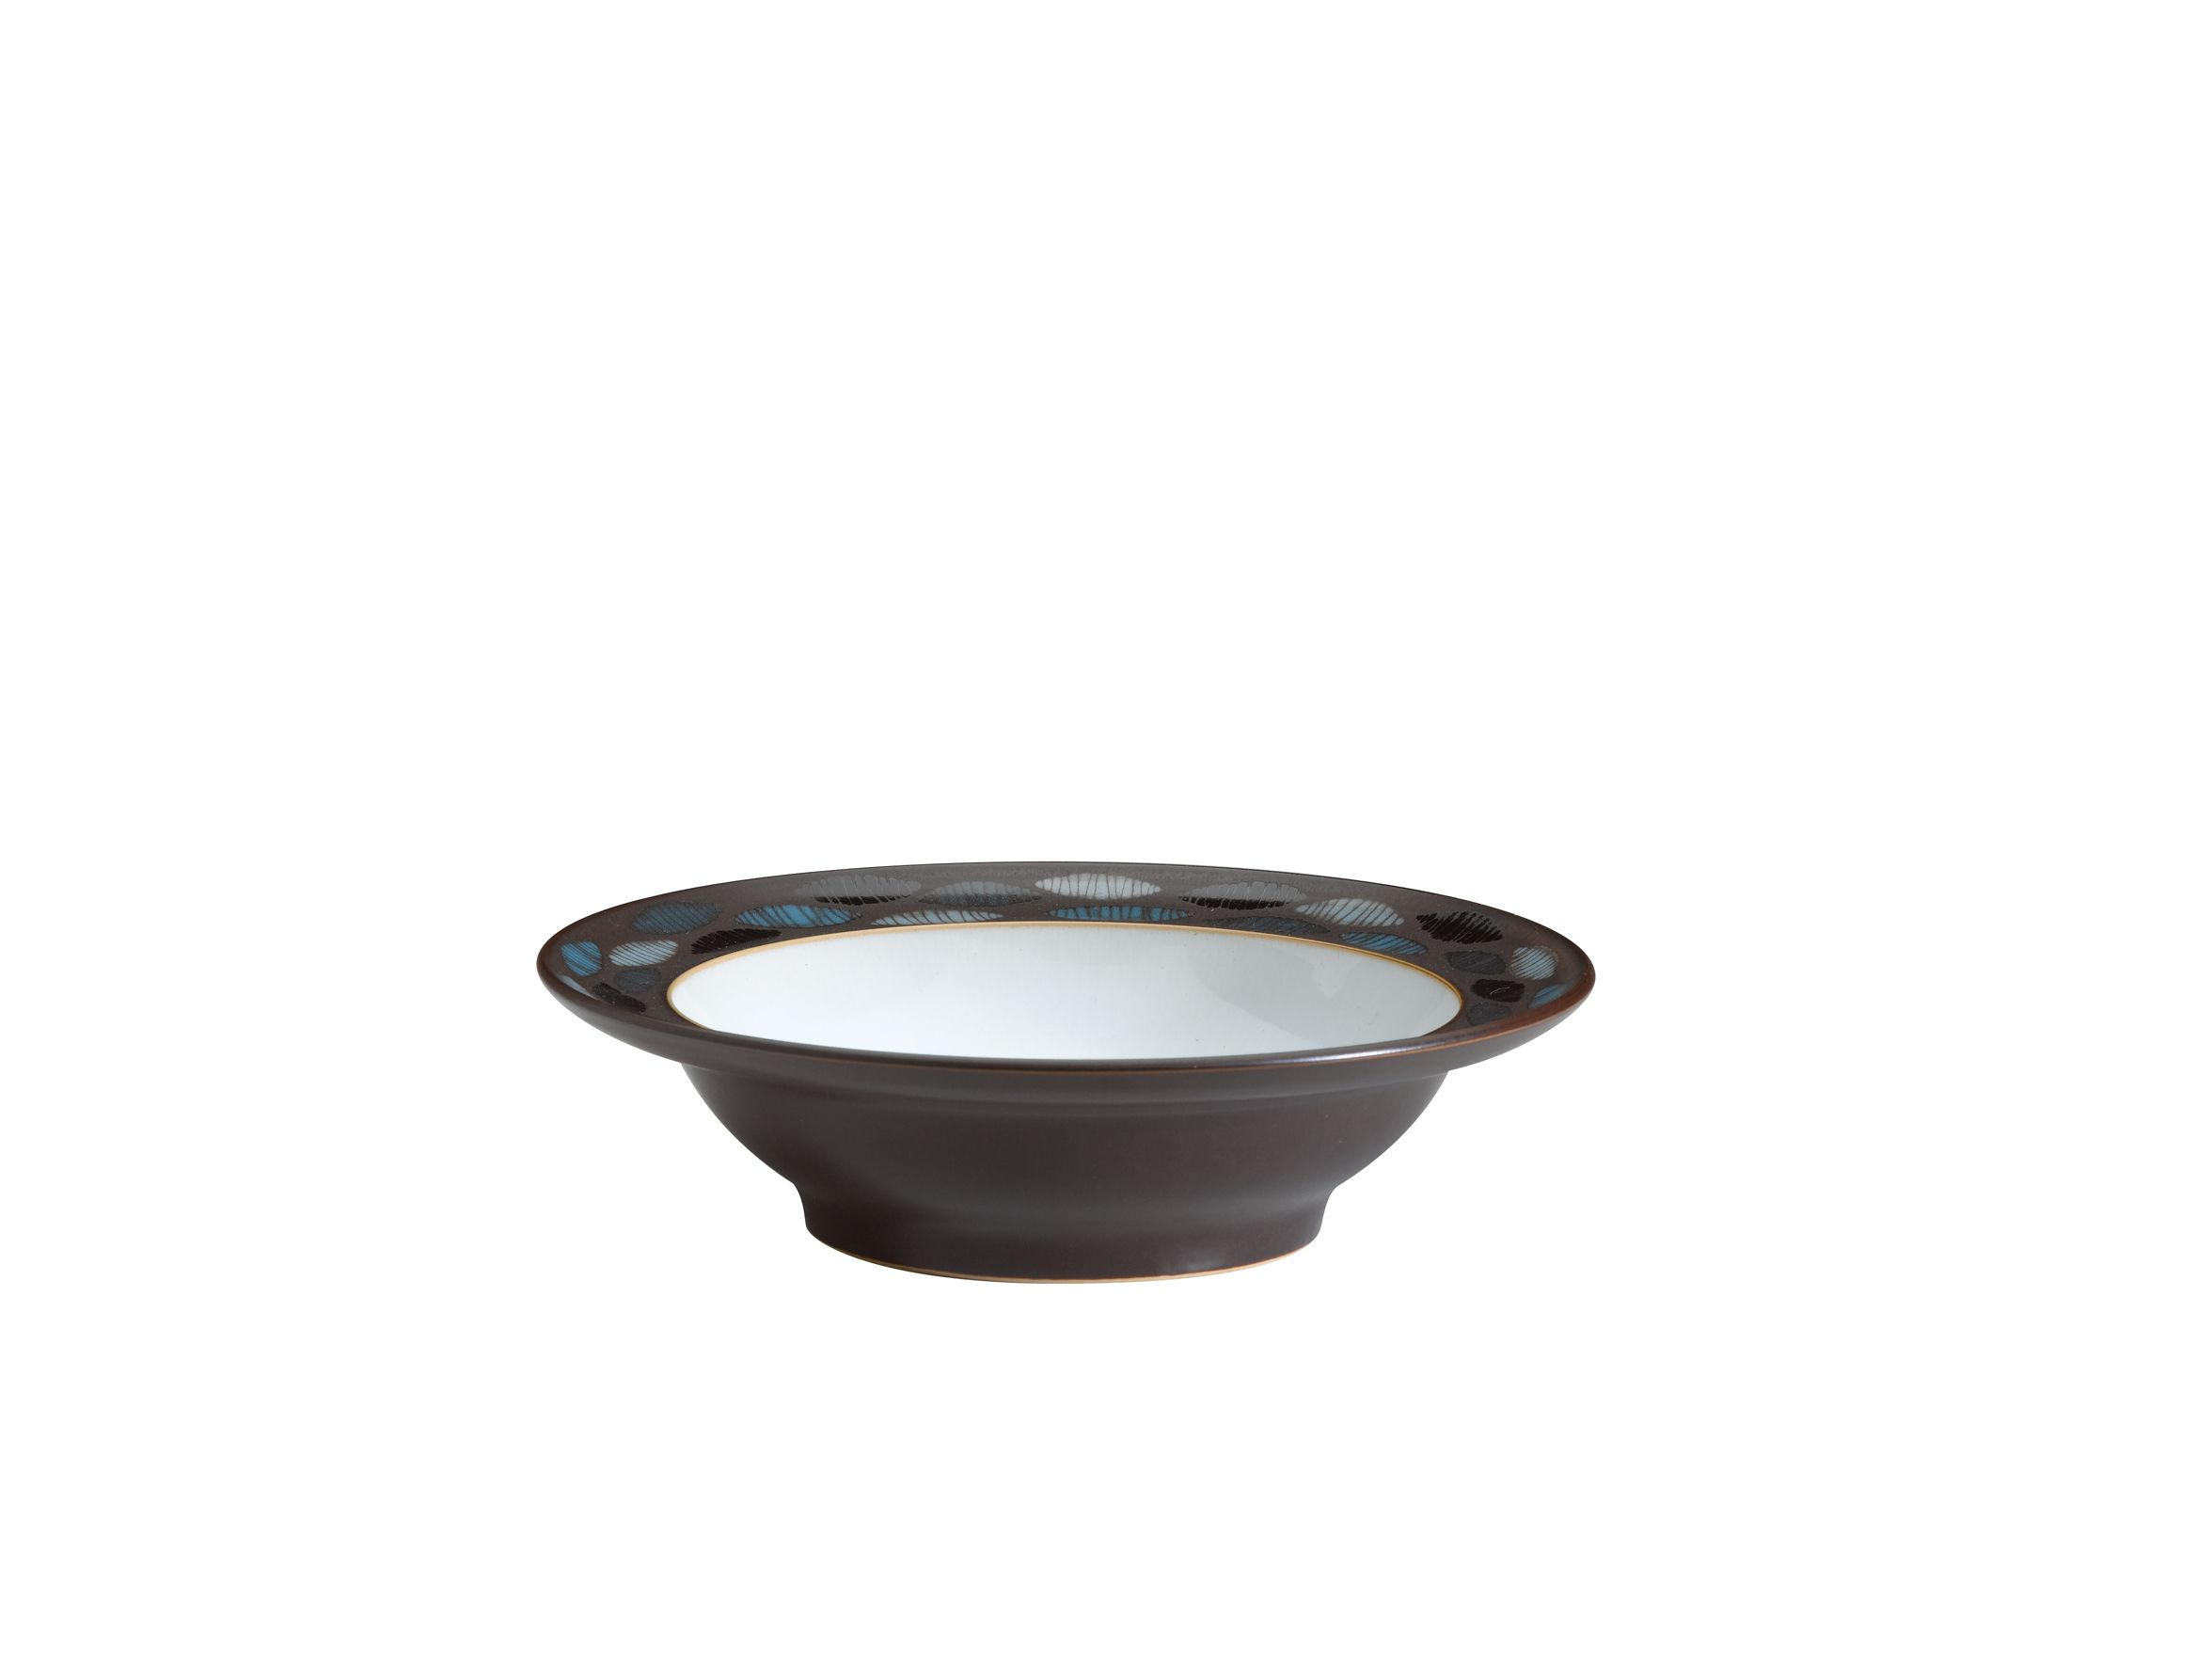 Sienna Ellipse Soup/Cereal Bowl